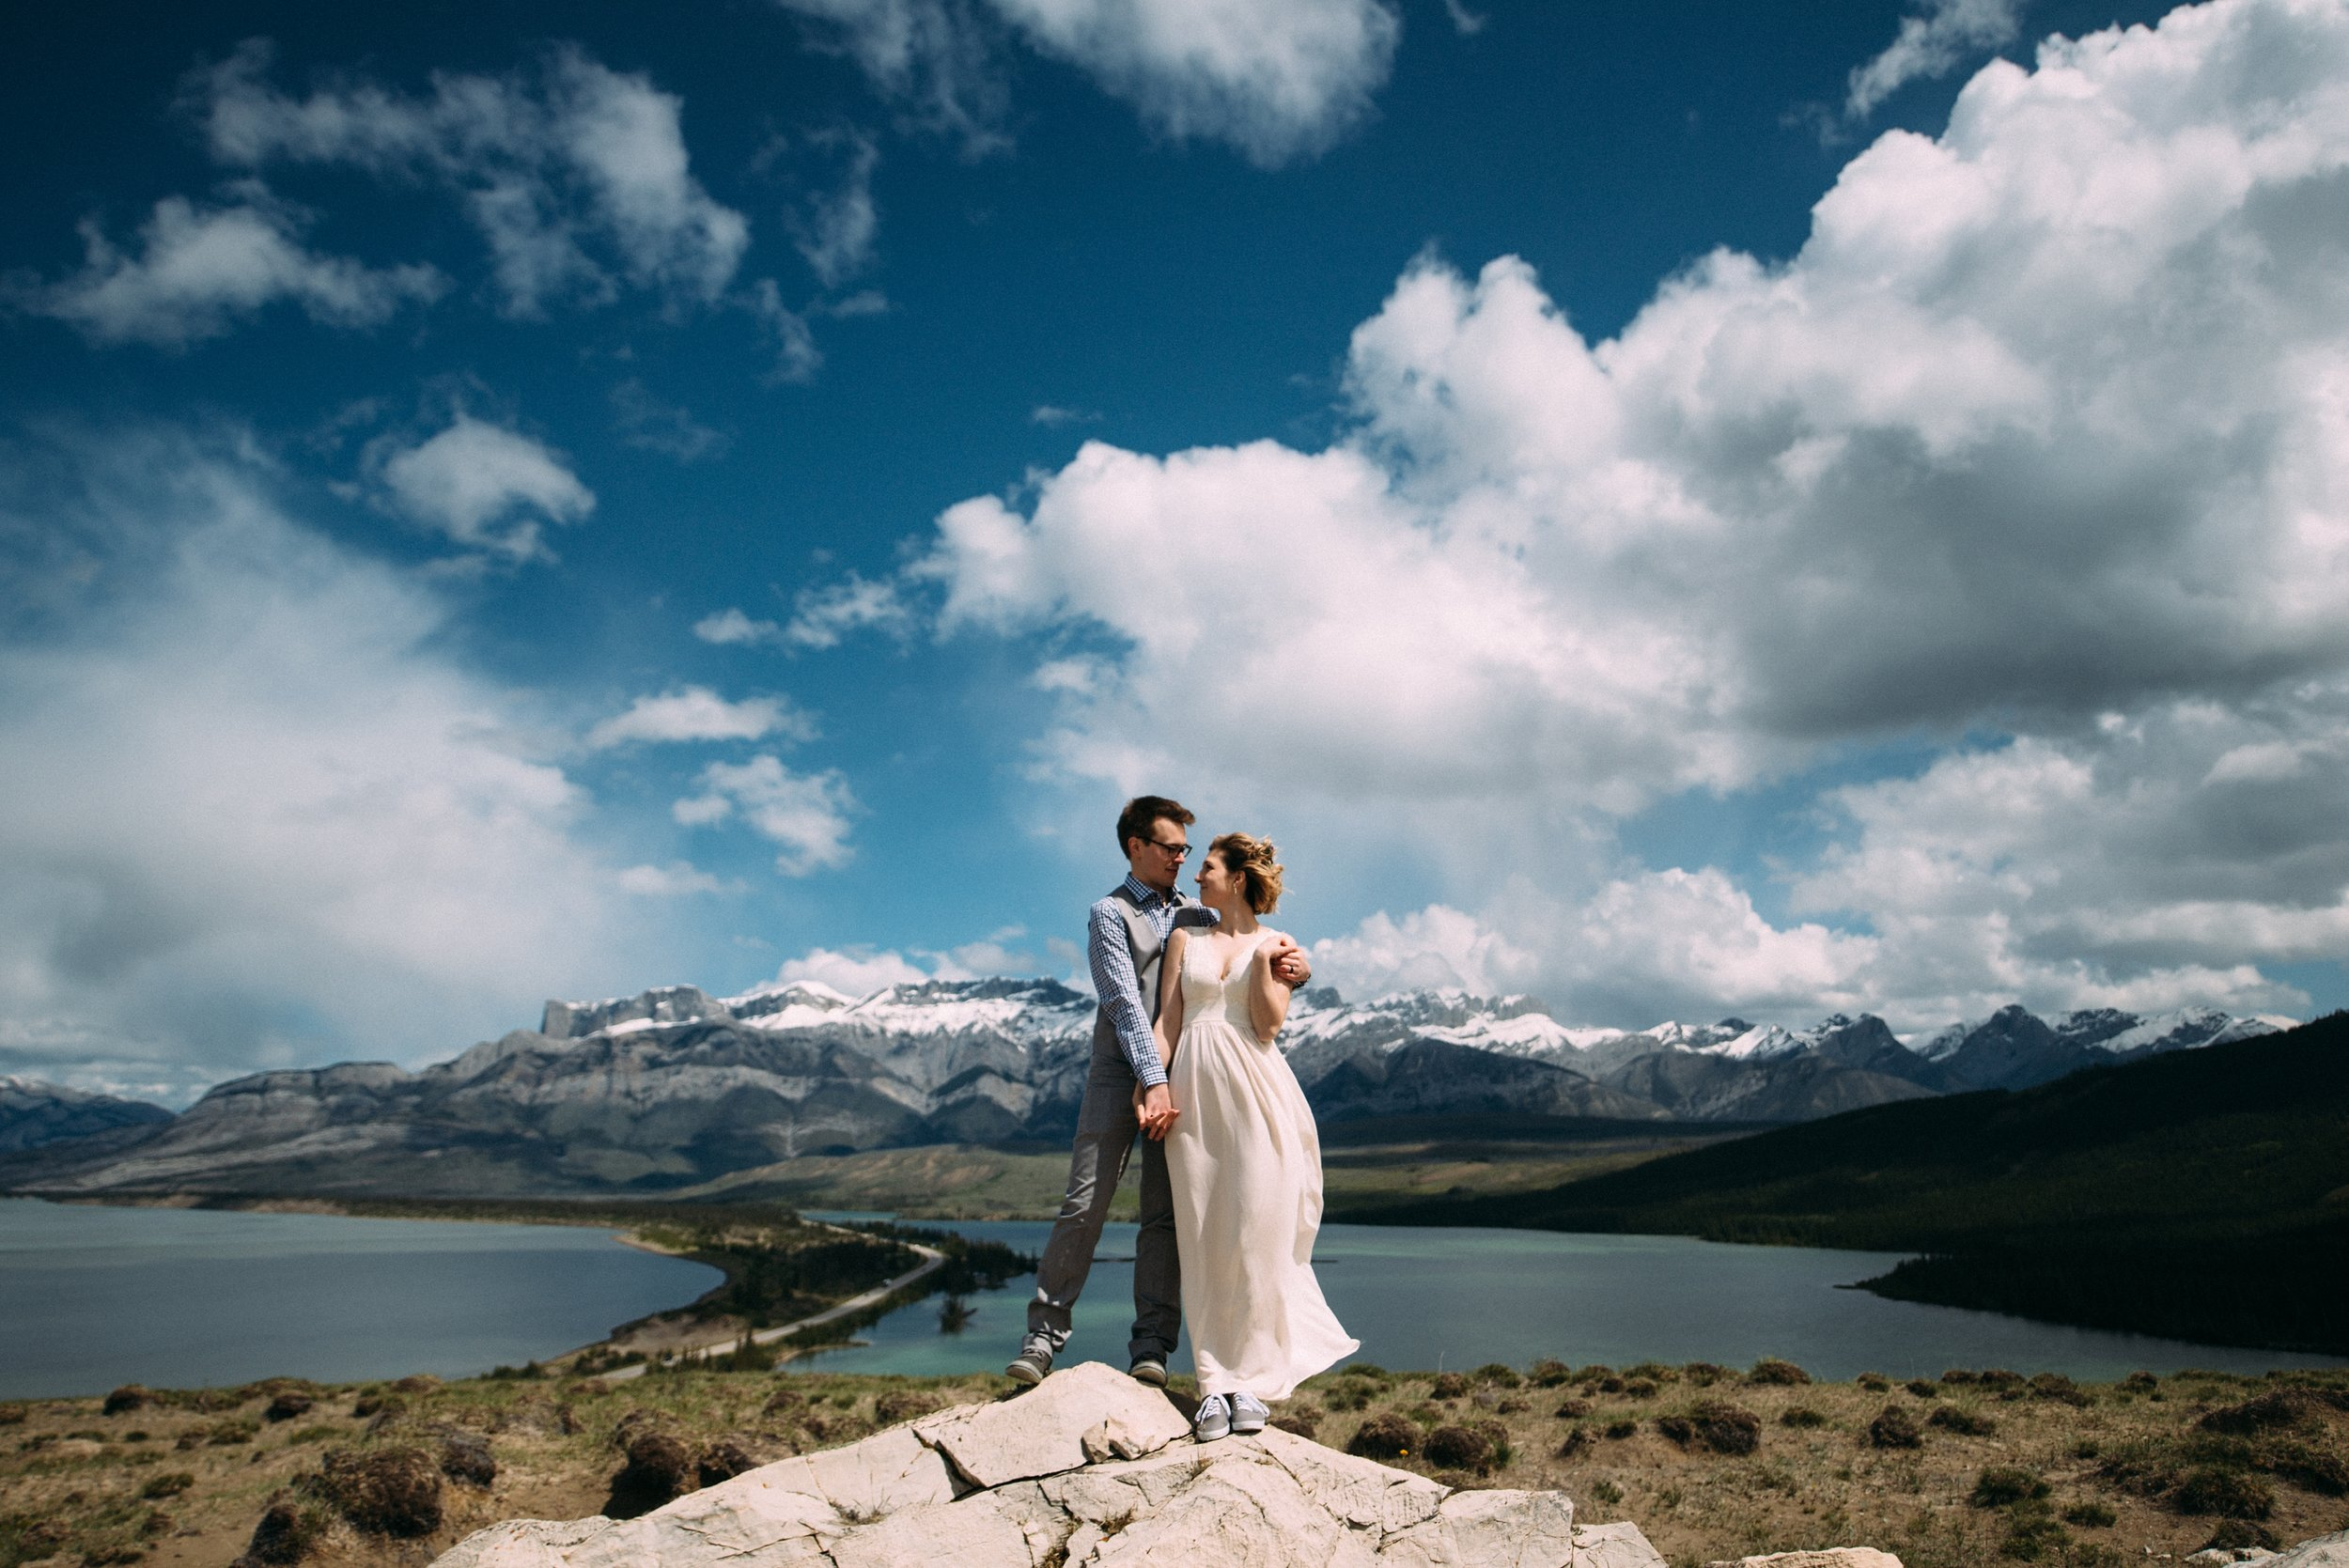 kaihla_tonai_intimate_wedding_elopement_photographer_3850